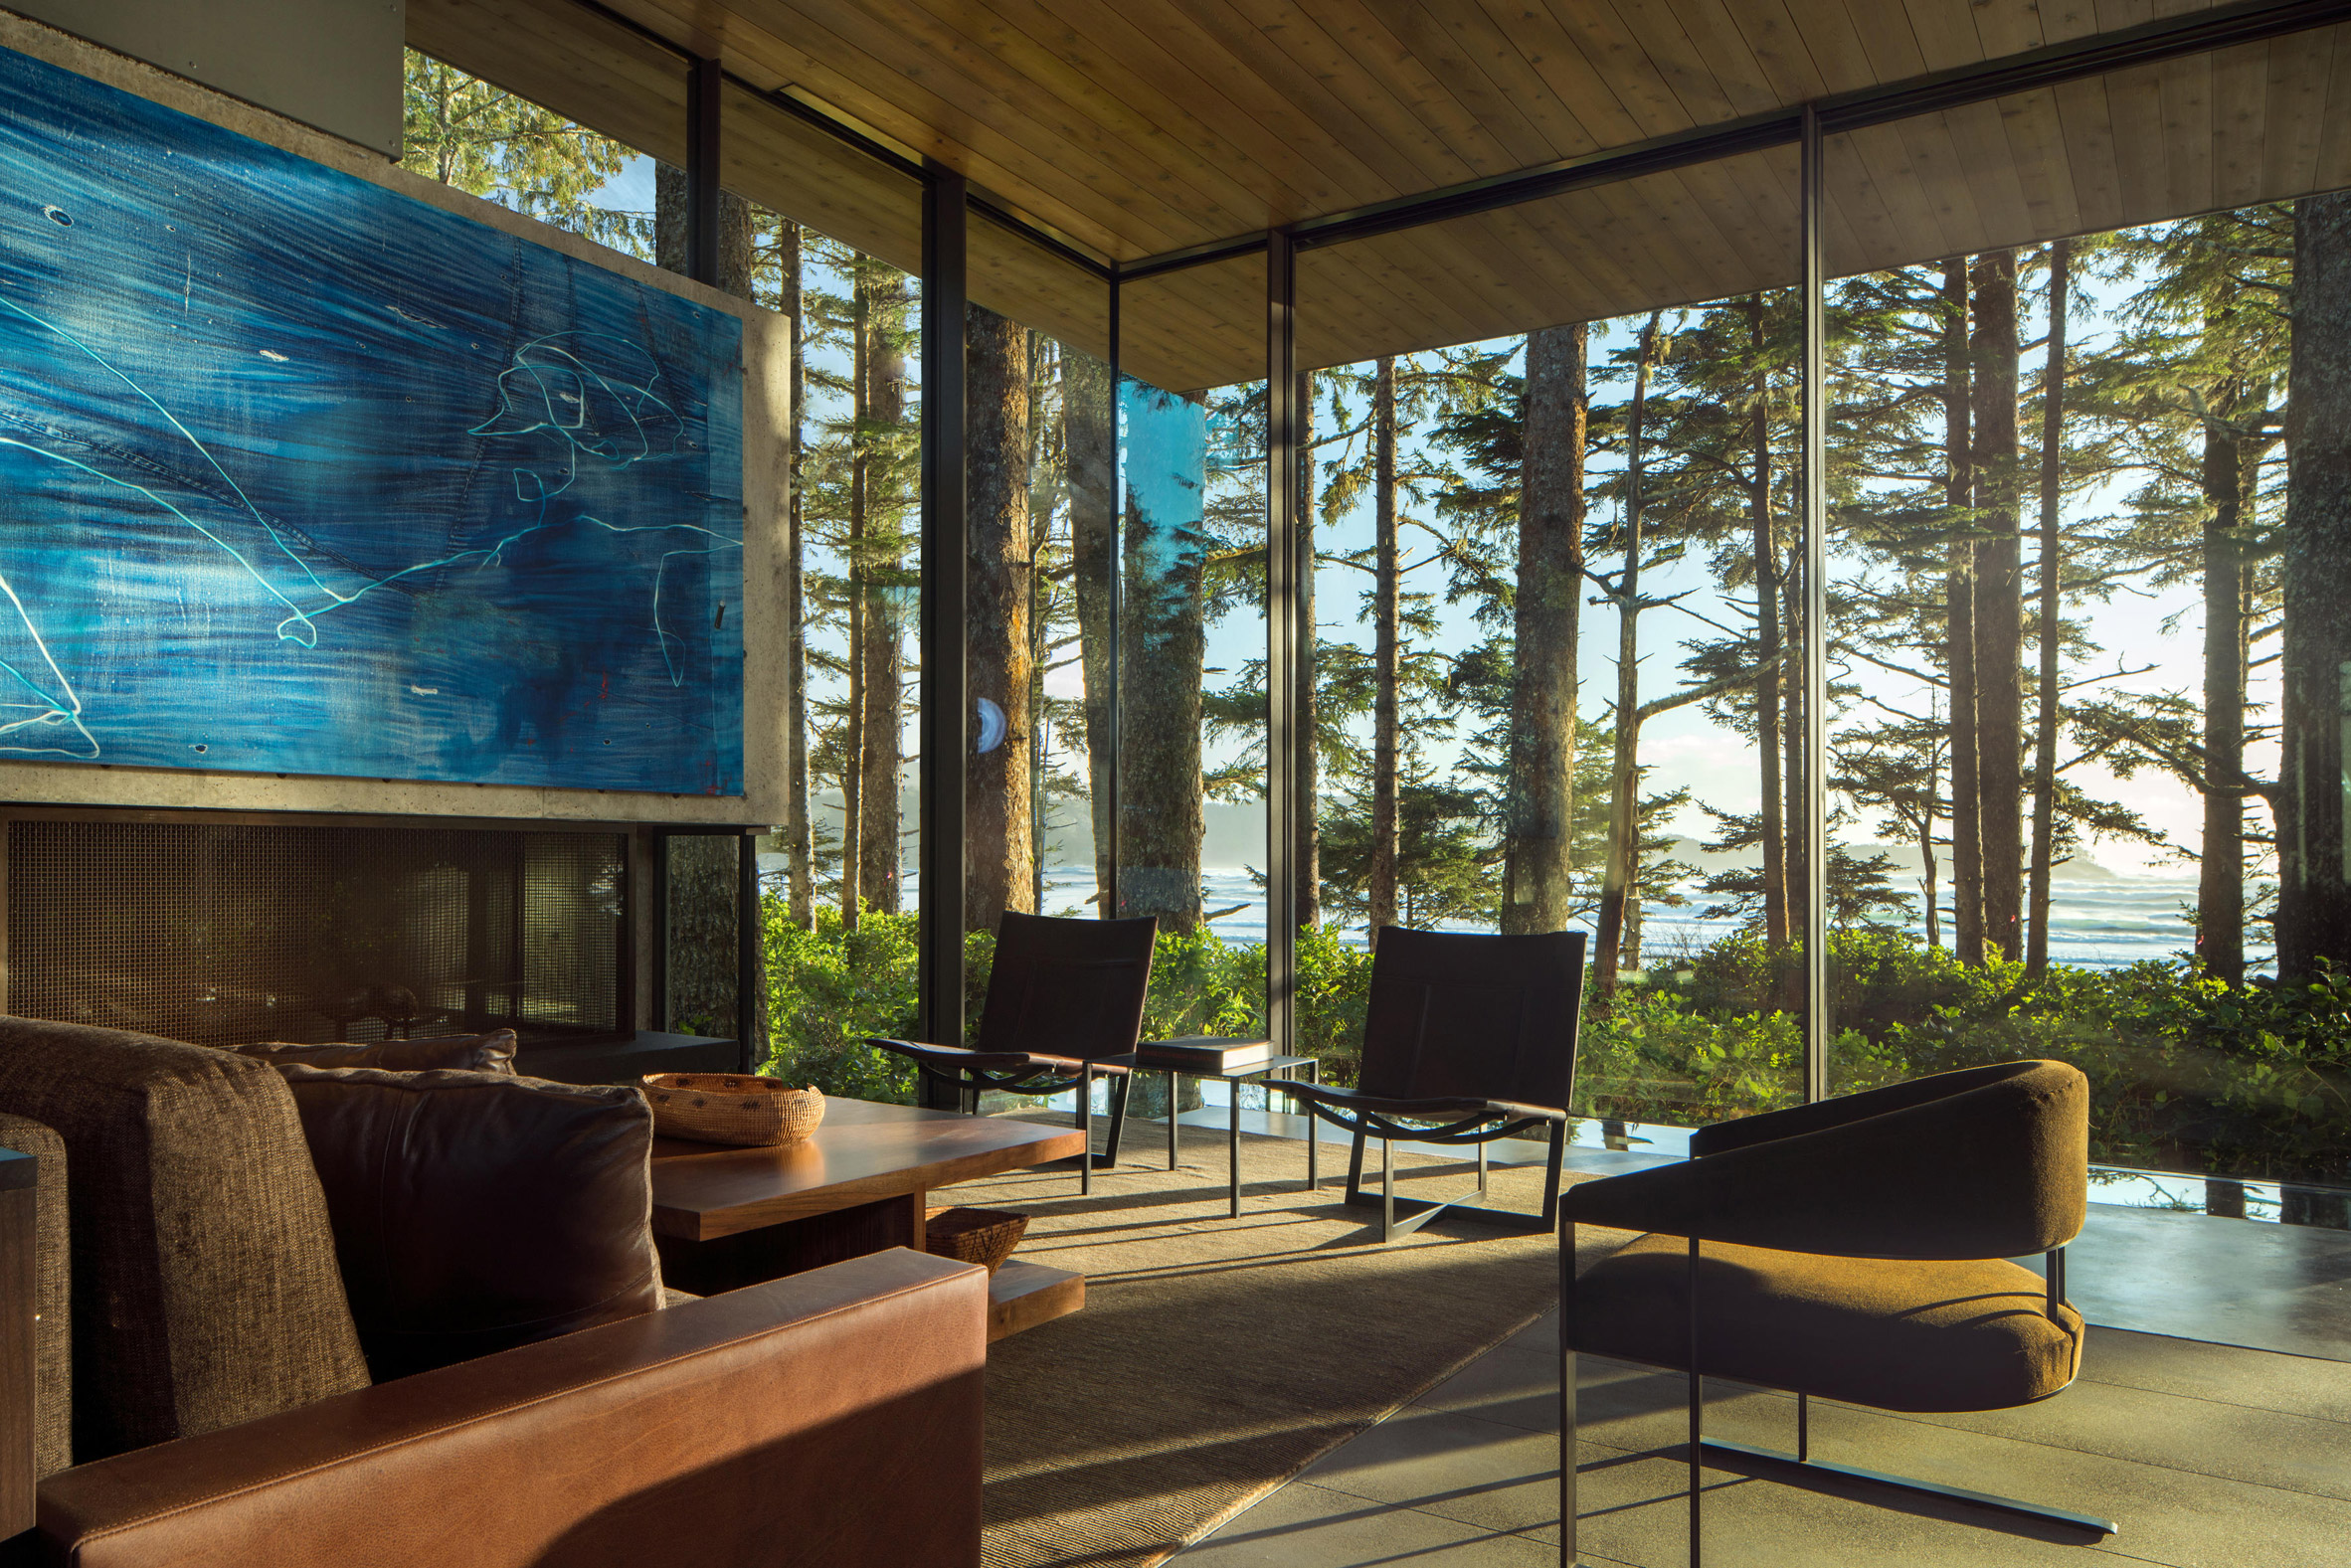 Living area with forest view